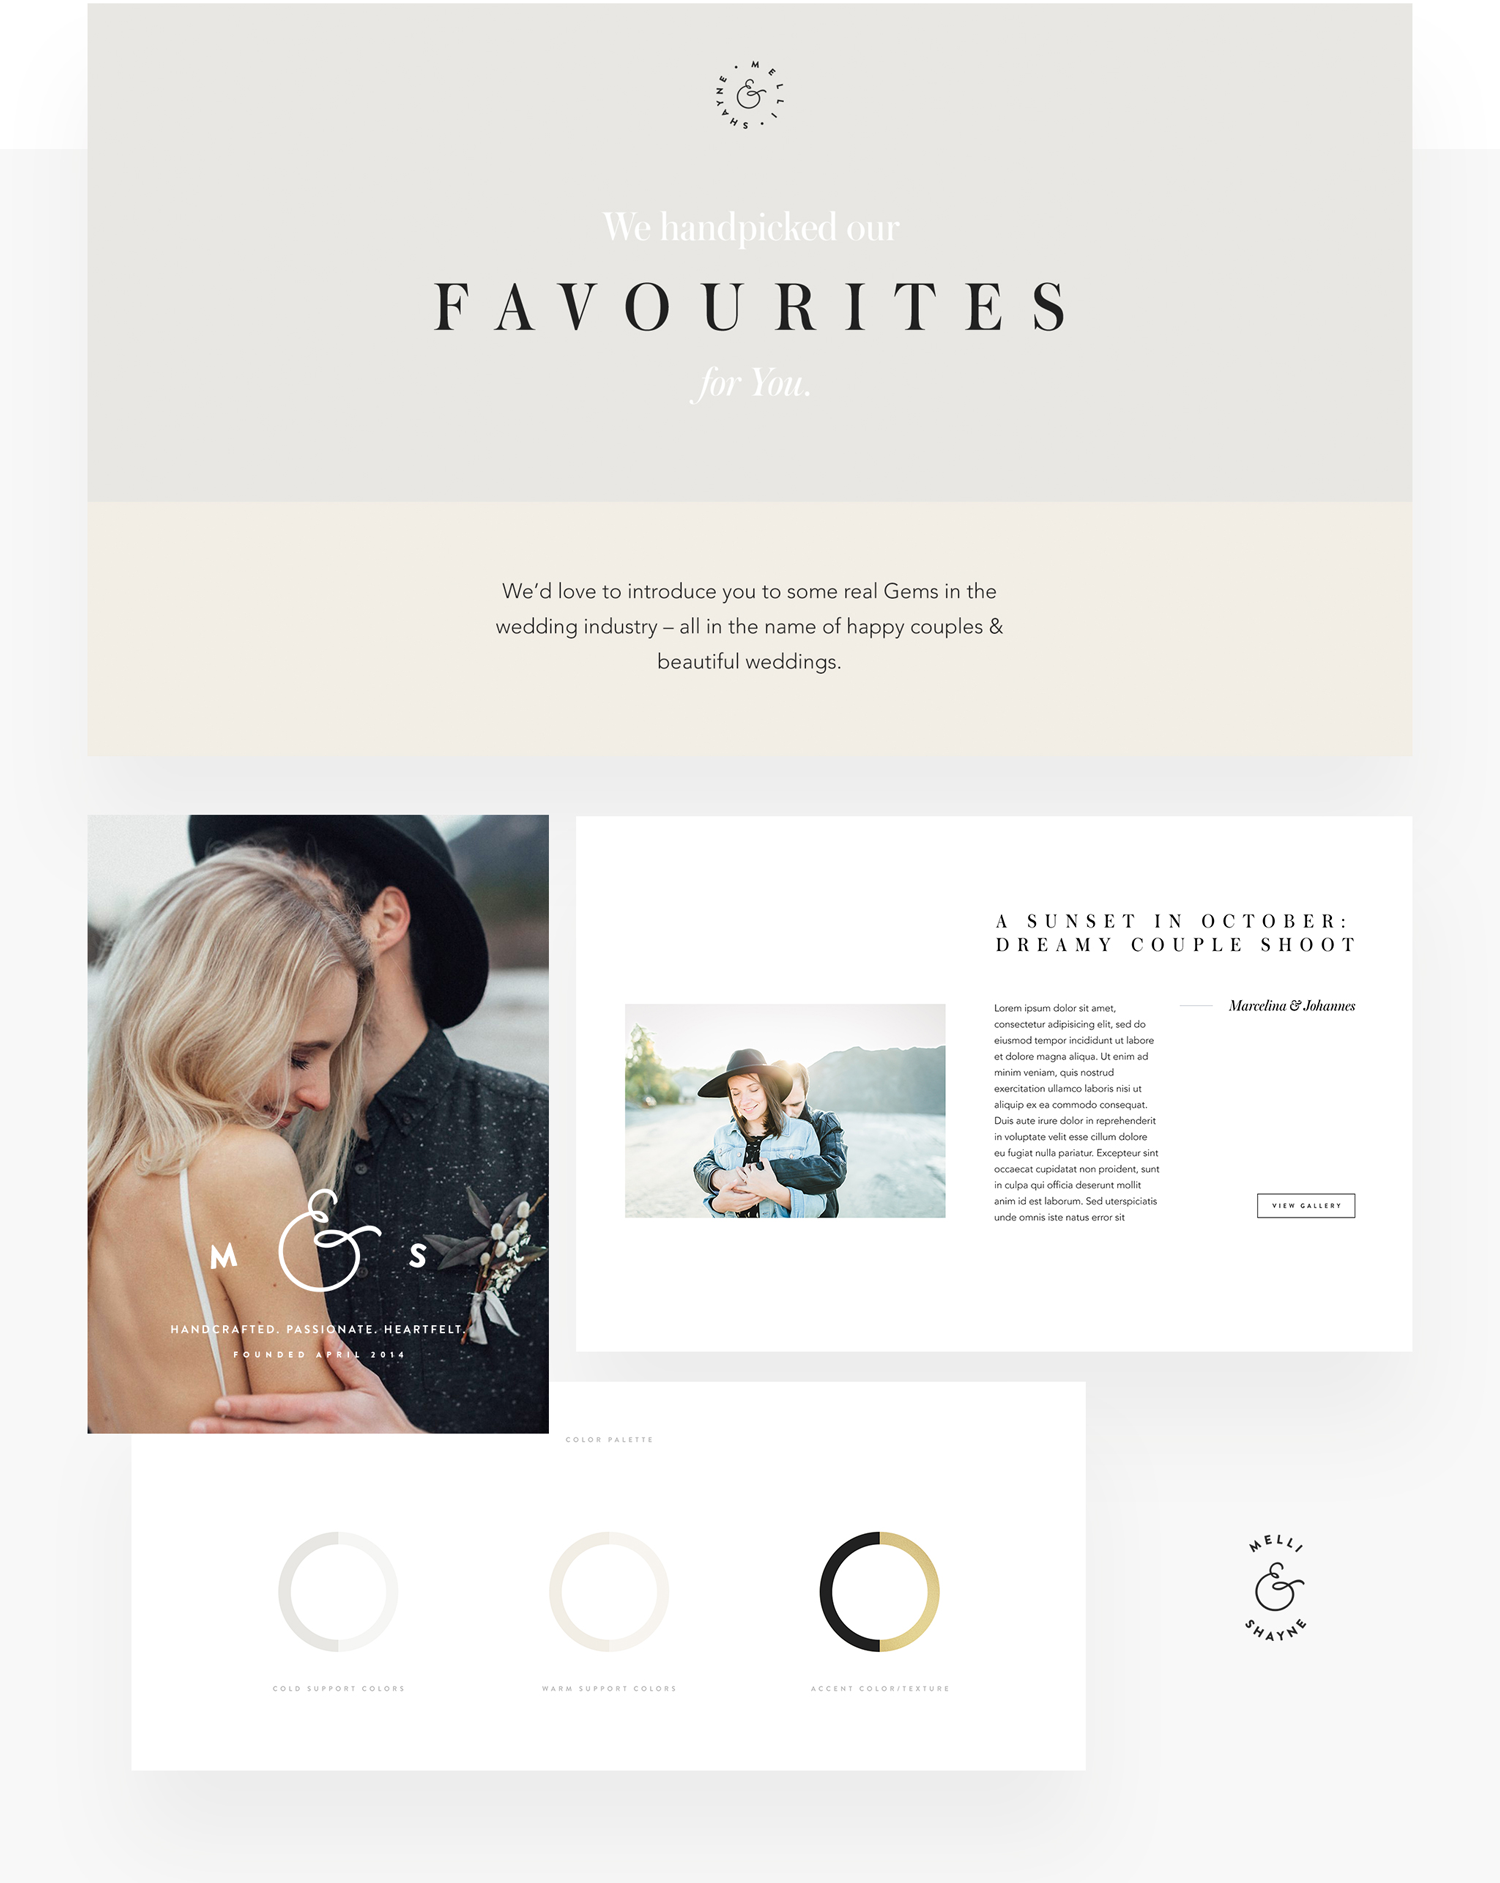 Melli & Shayne Wedding Photography, Germany, website design, flothemes, branding 2